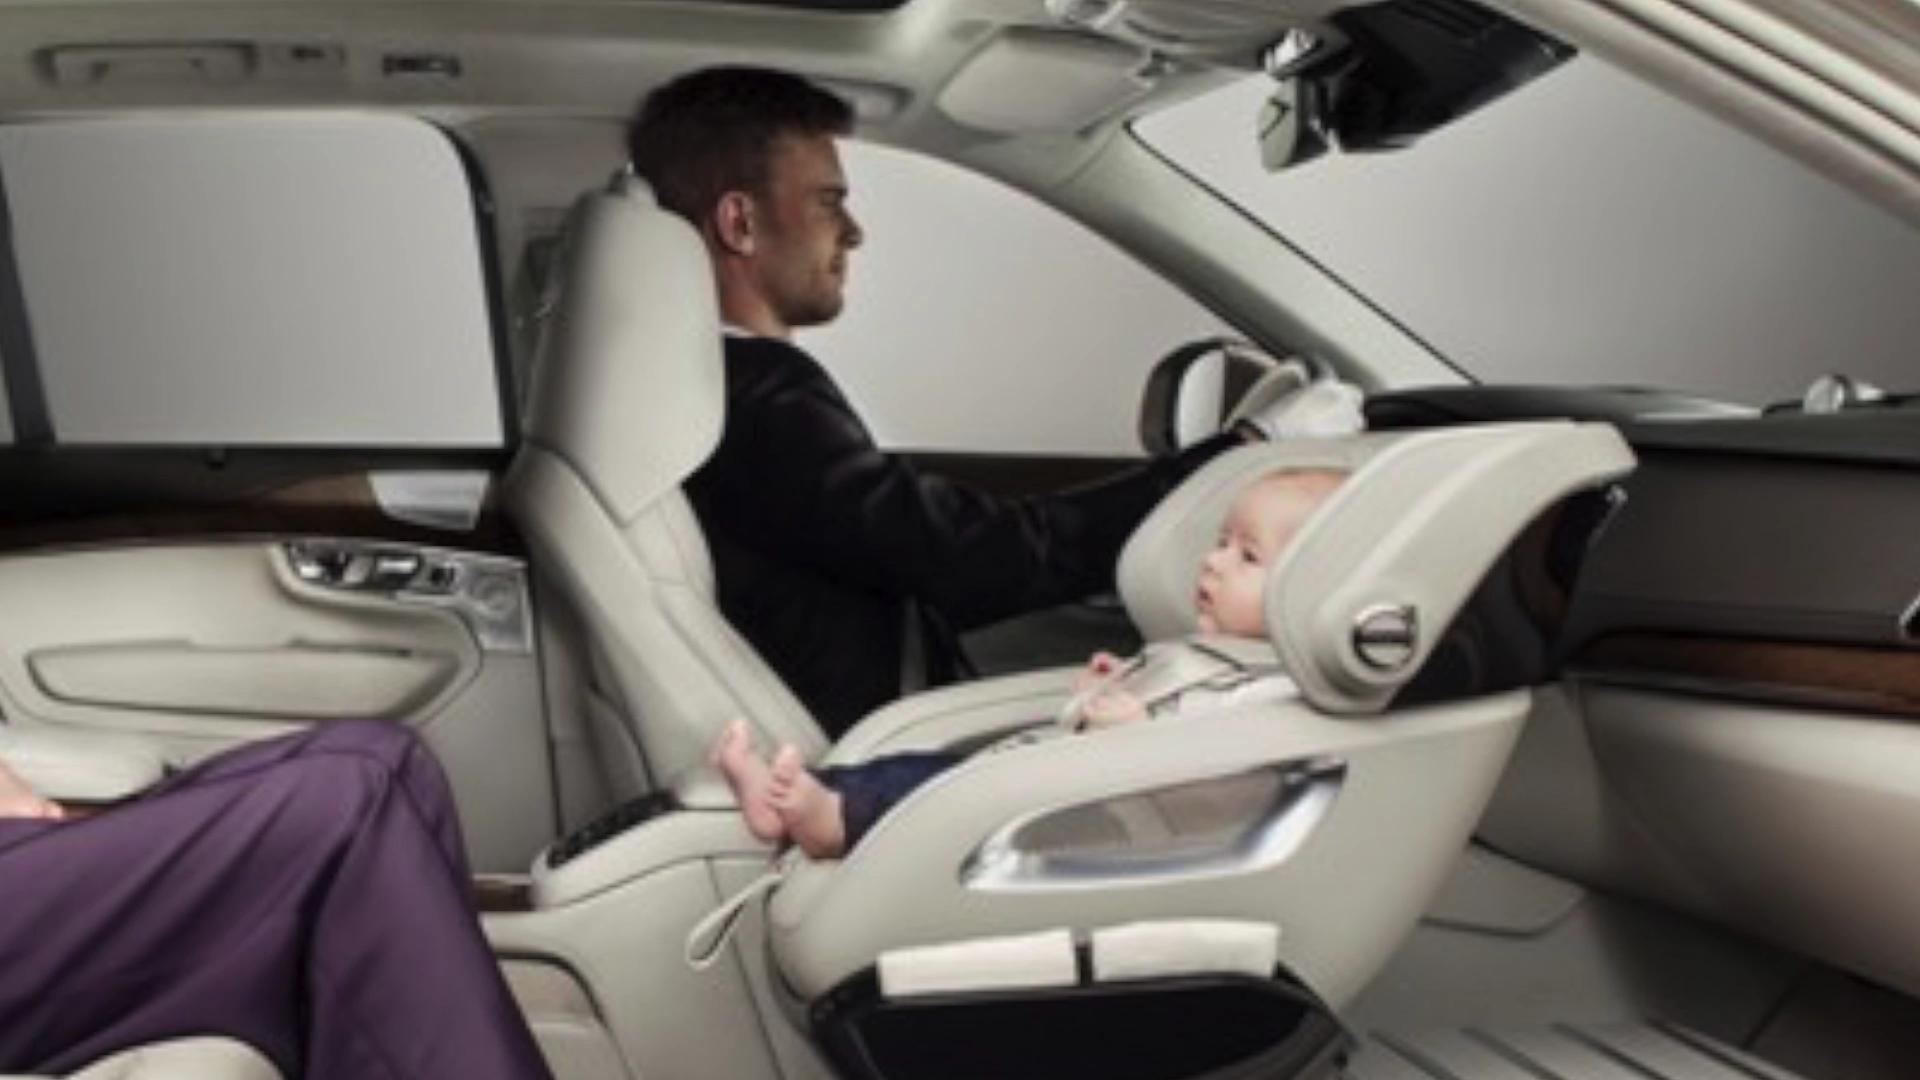 Volvo design concept replaces passenger seat with baby carrier